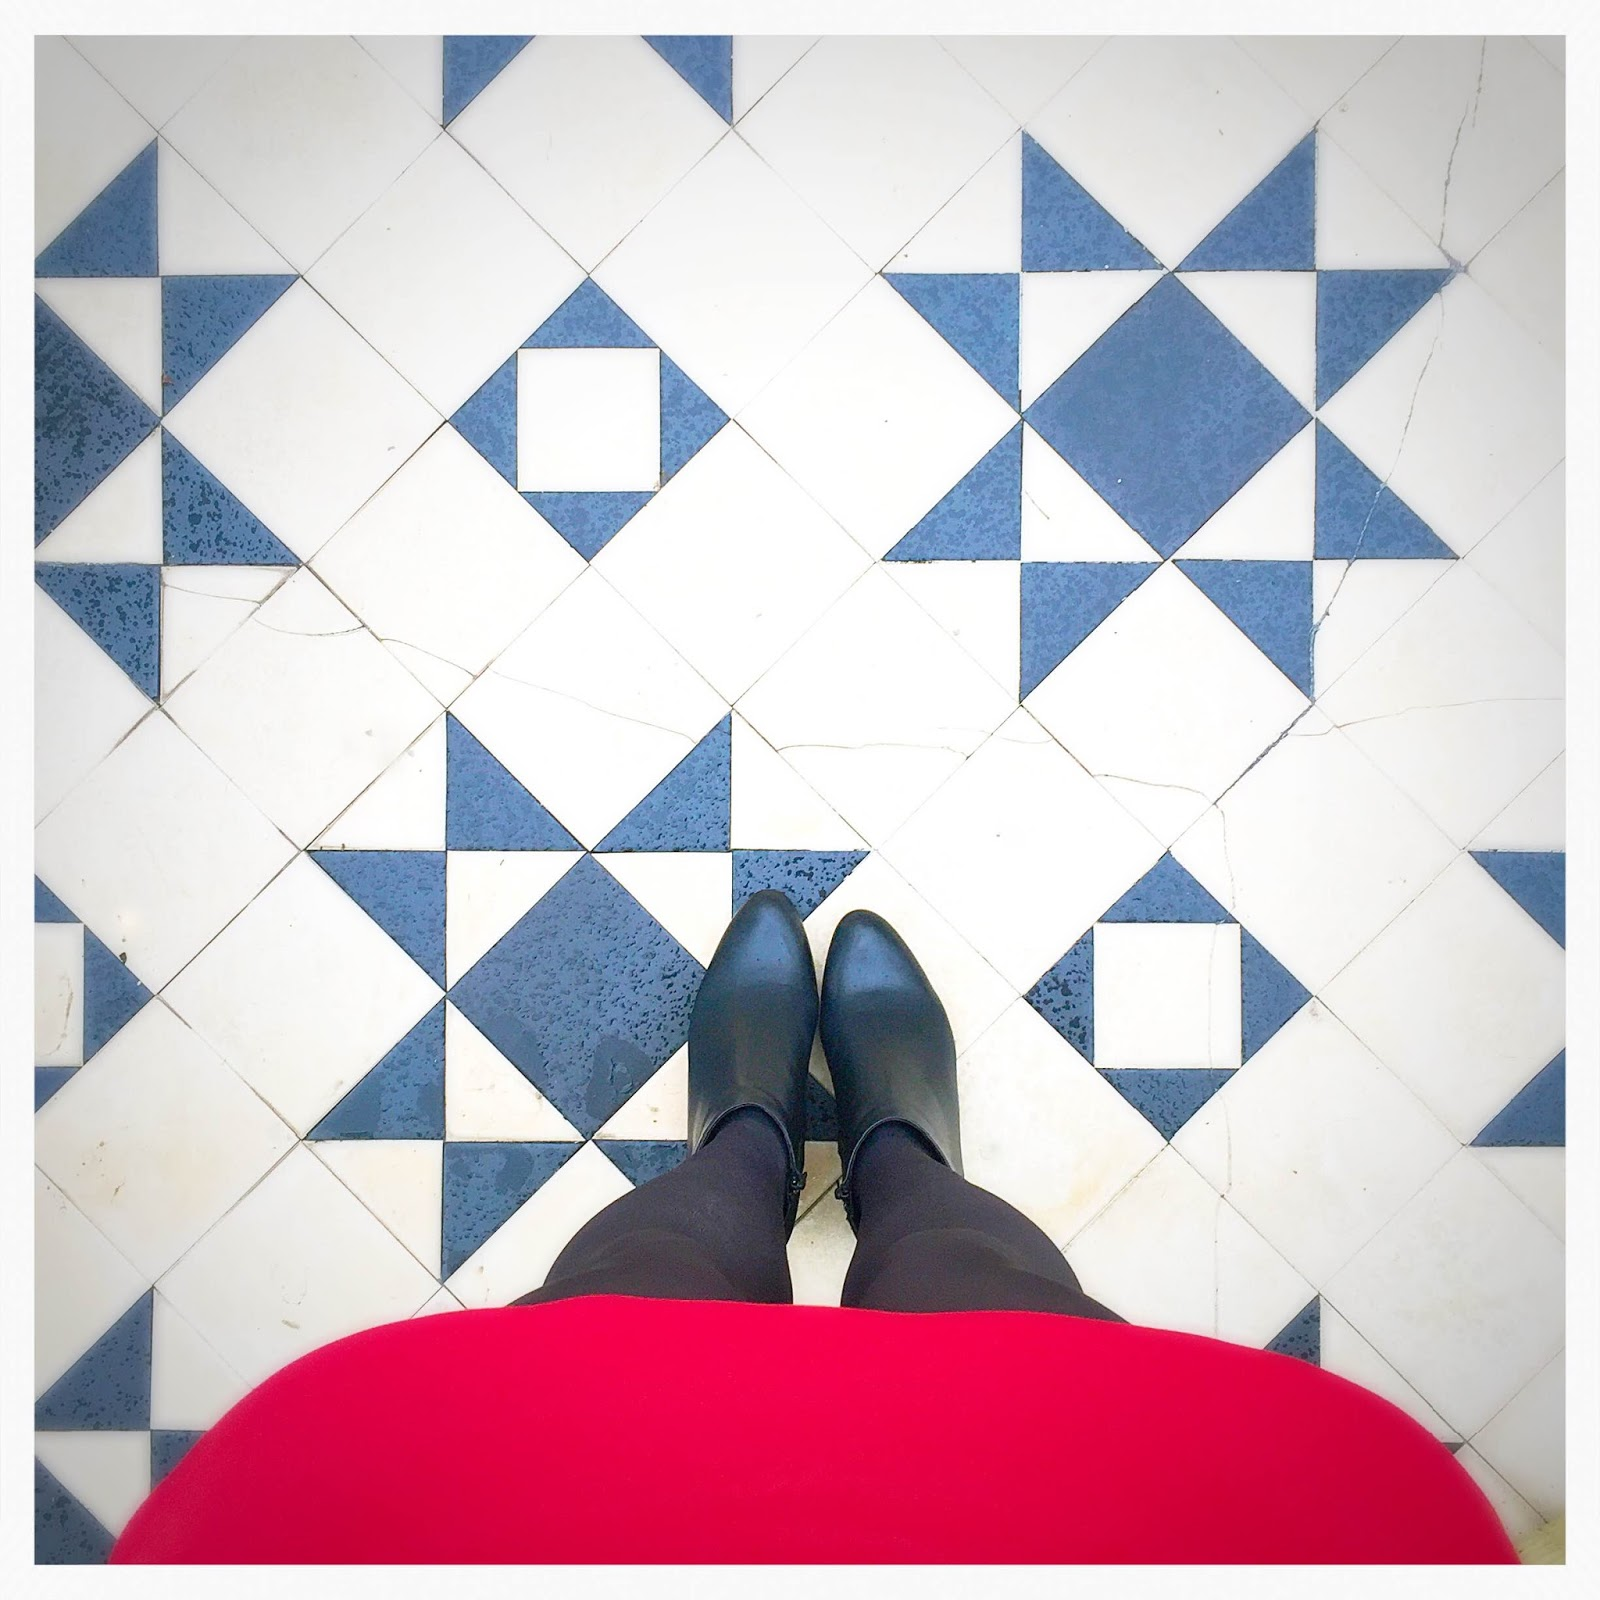 Kensington flooring tiles London fashion shoot